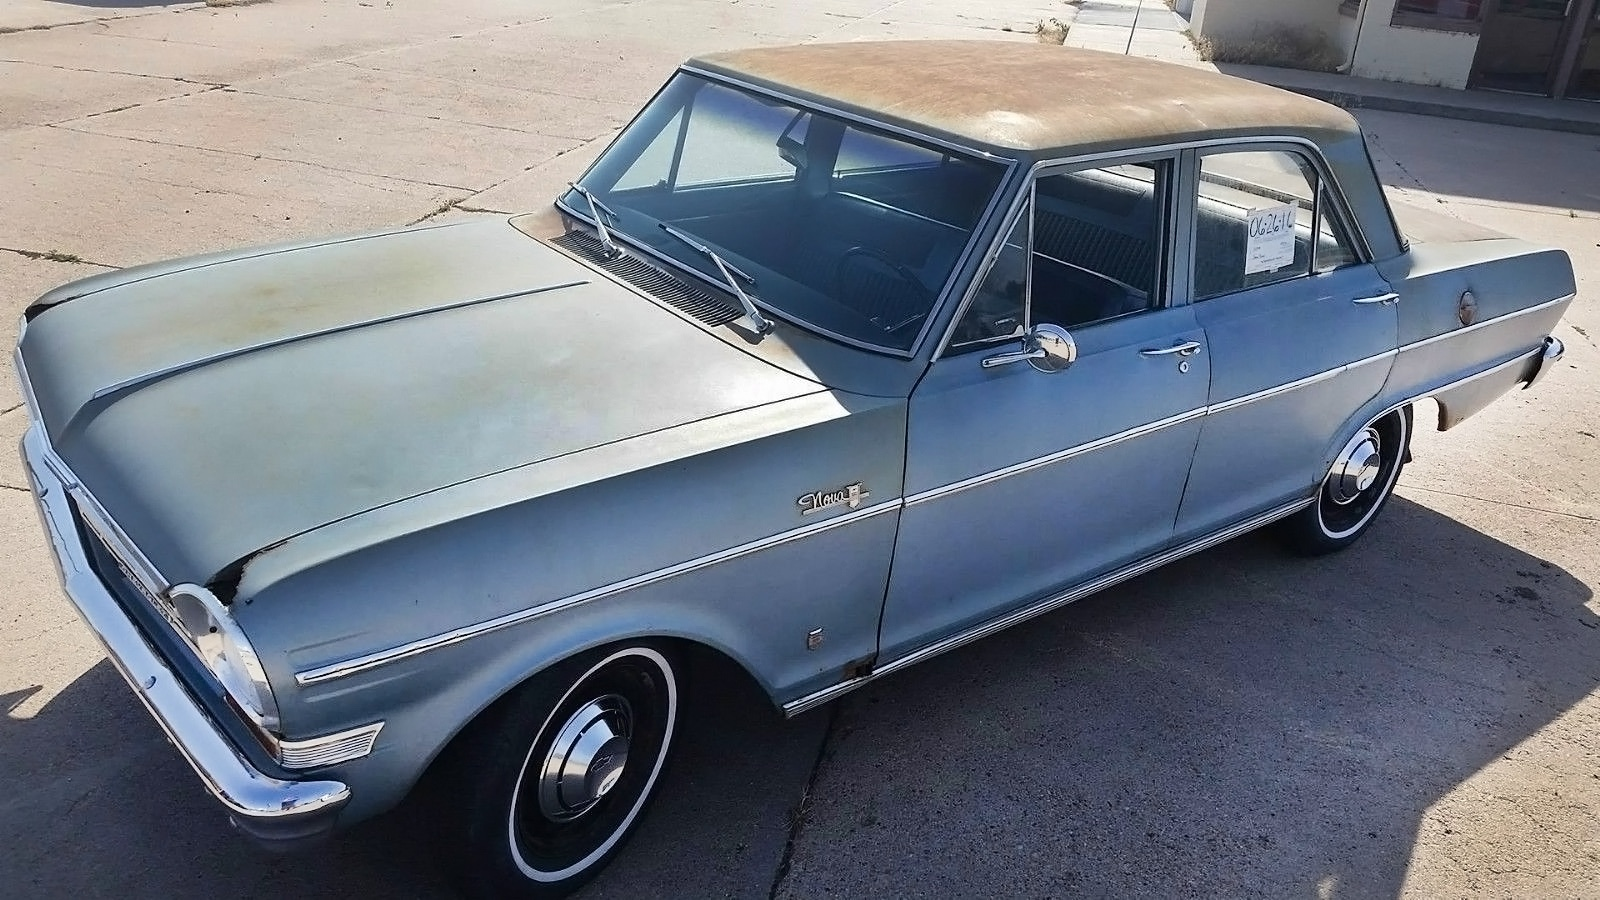 071516 Barn Finds - 1964 Chevrolet Chevy II Nova 400- 3